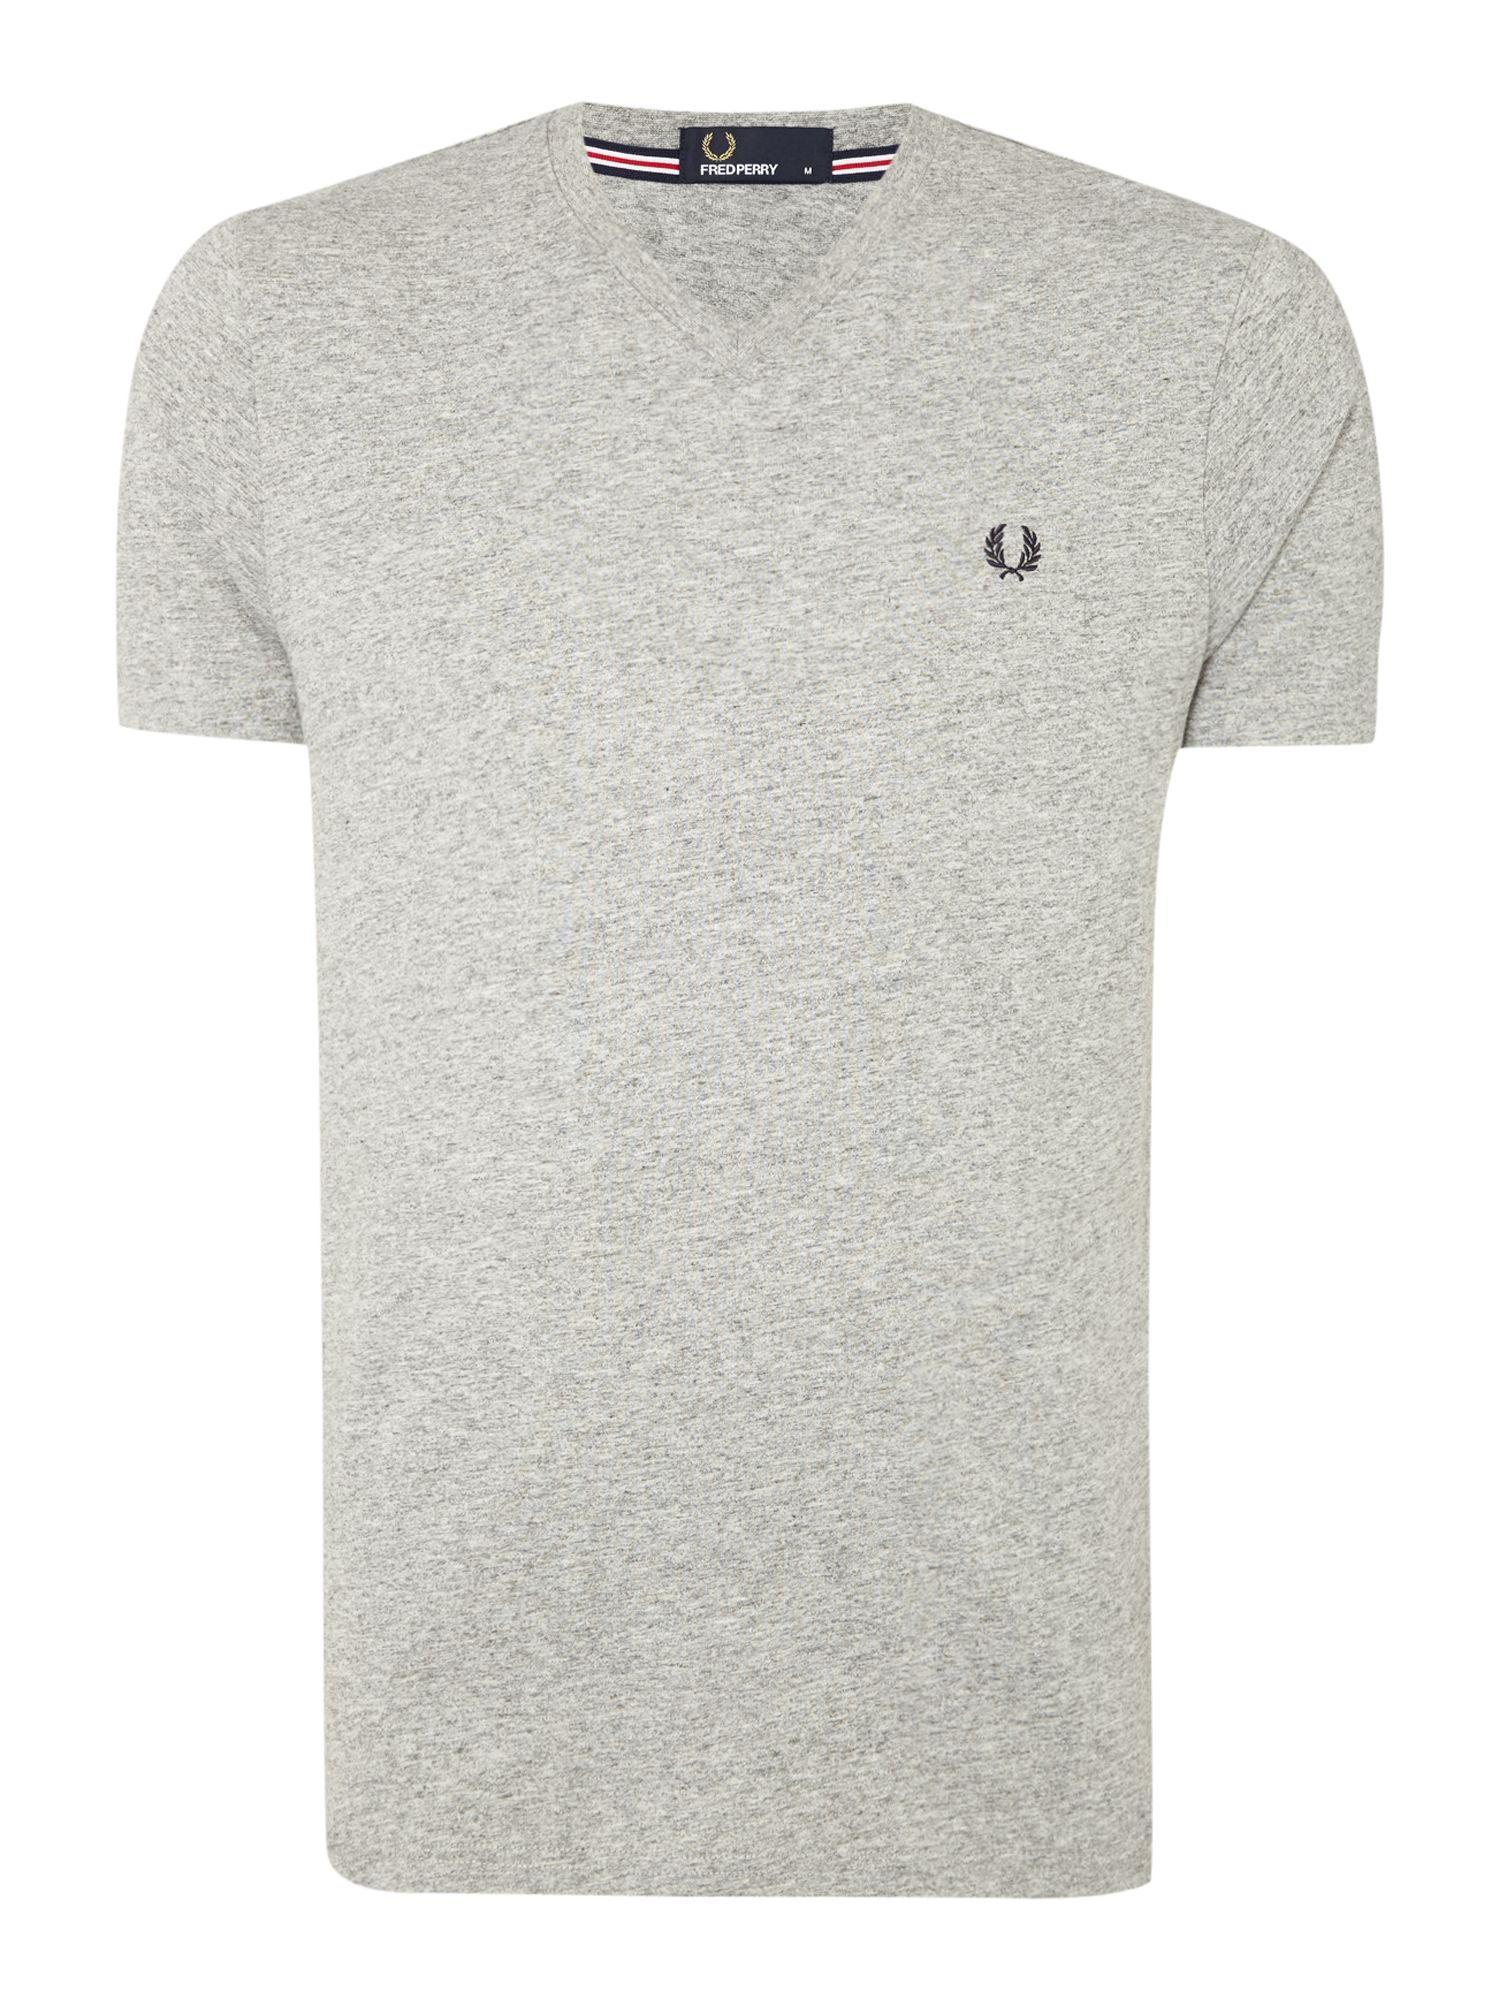 Men's Fred Perry Plain V Neck Regular Fit T-Shirt, Grey Marl